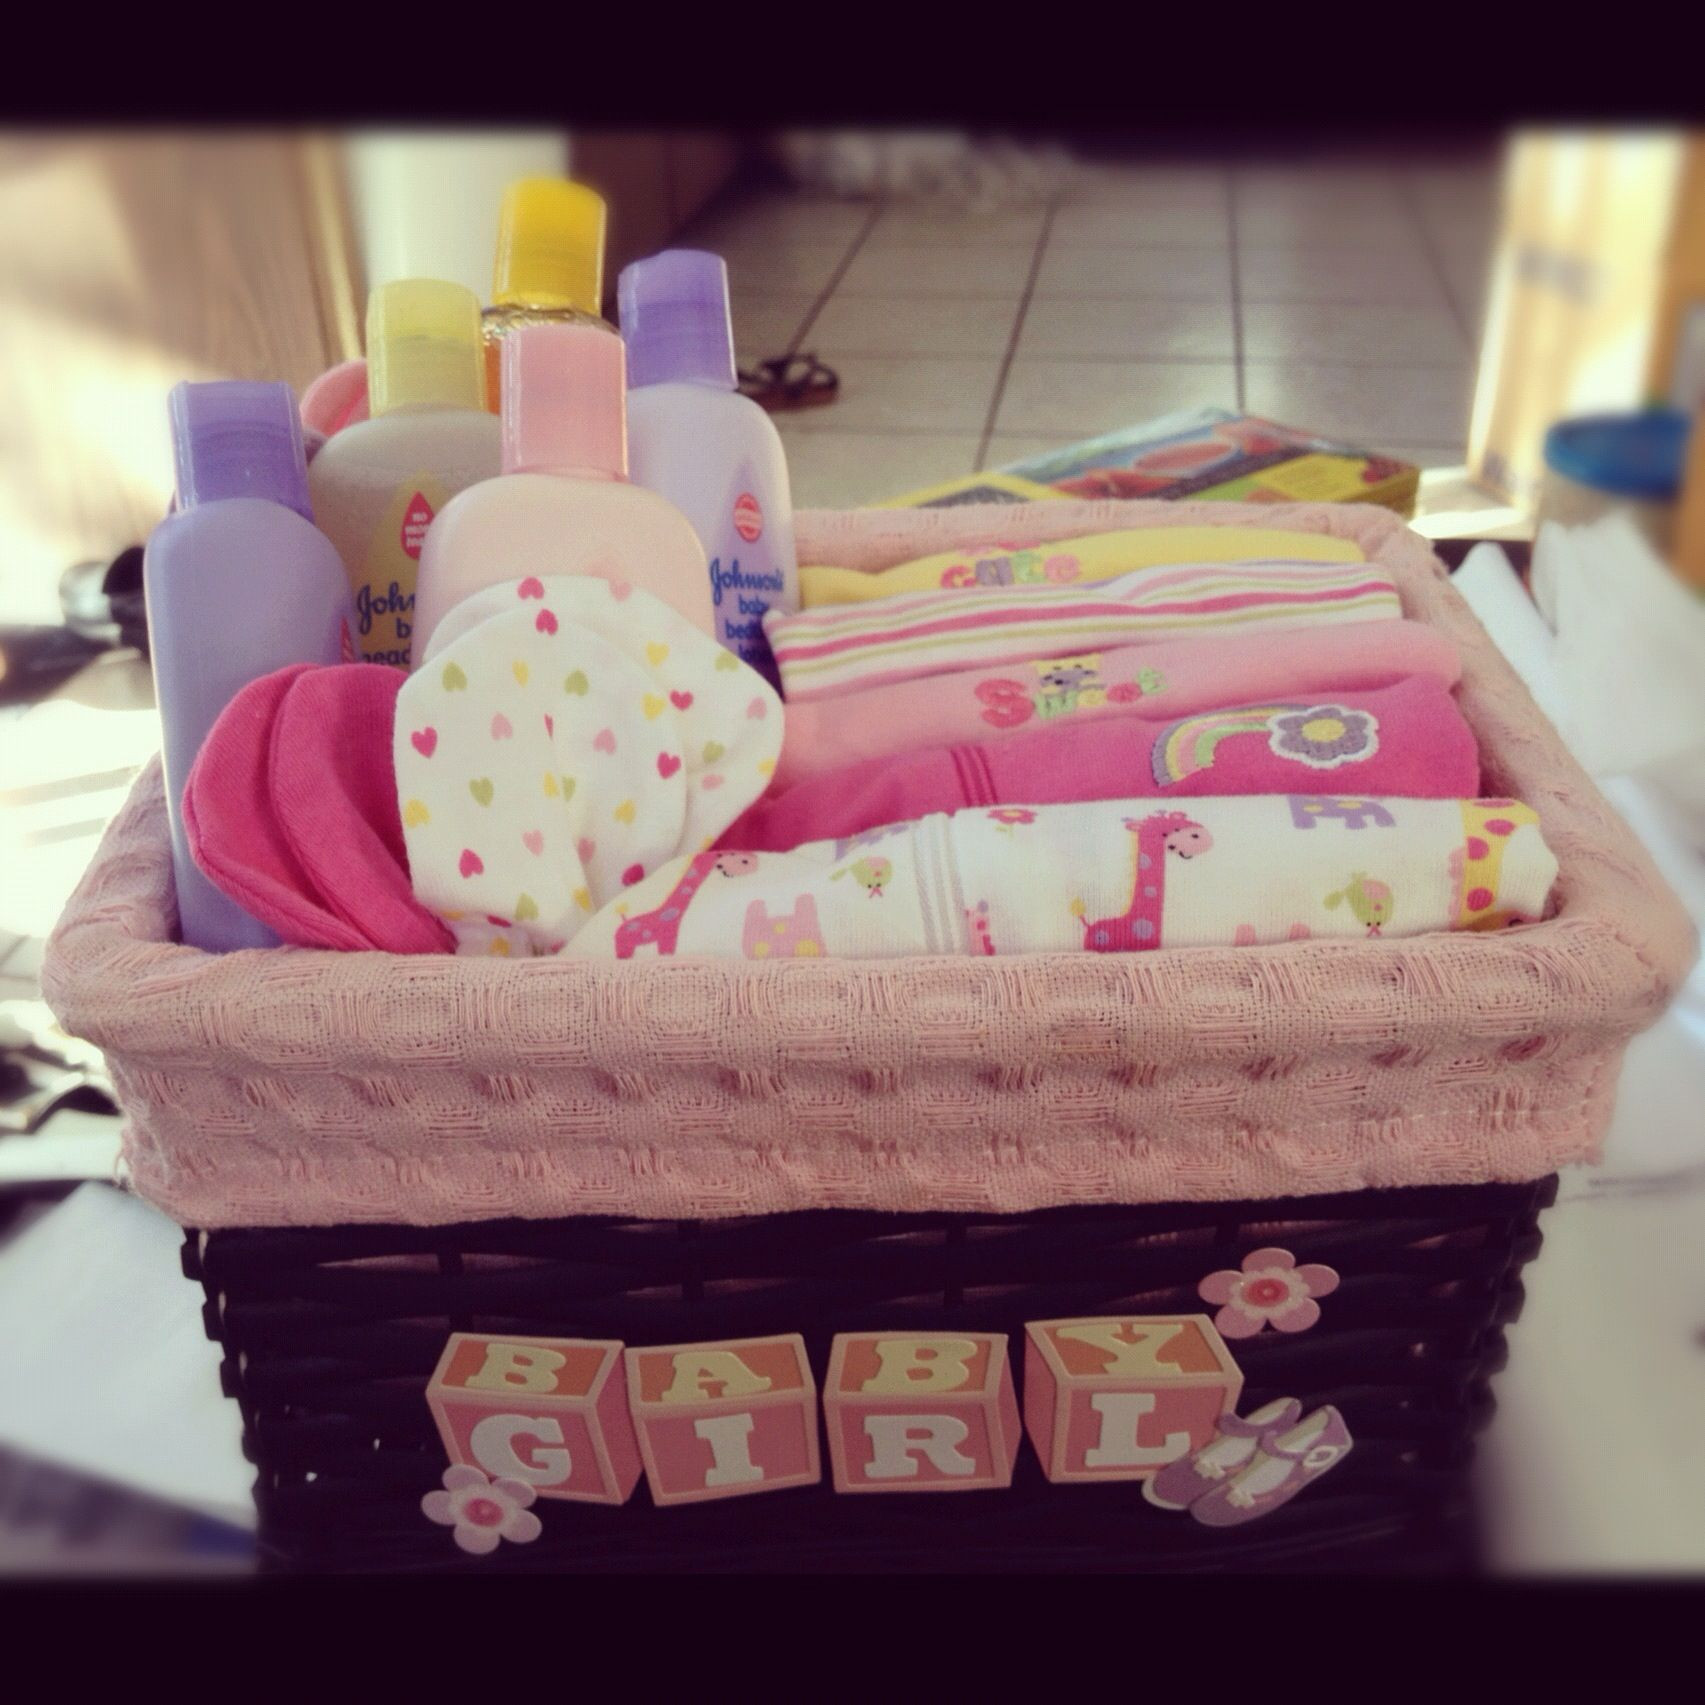 Best ideas about Baby Shower DIY Gifts . Save or Pin DIY Baby Shower Gift Basket Ideas for Girls Now.